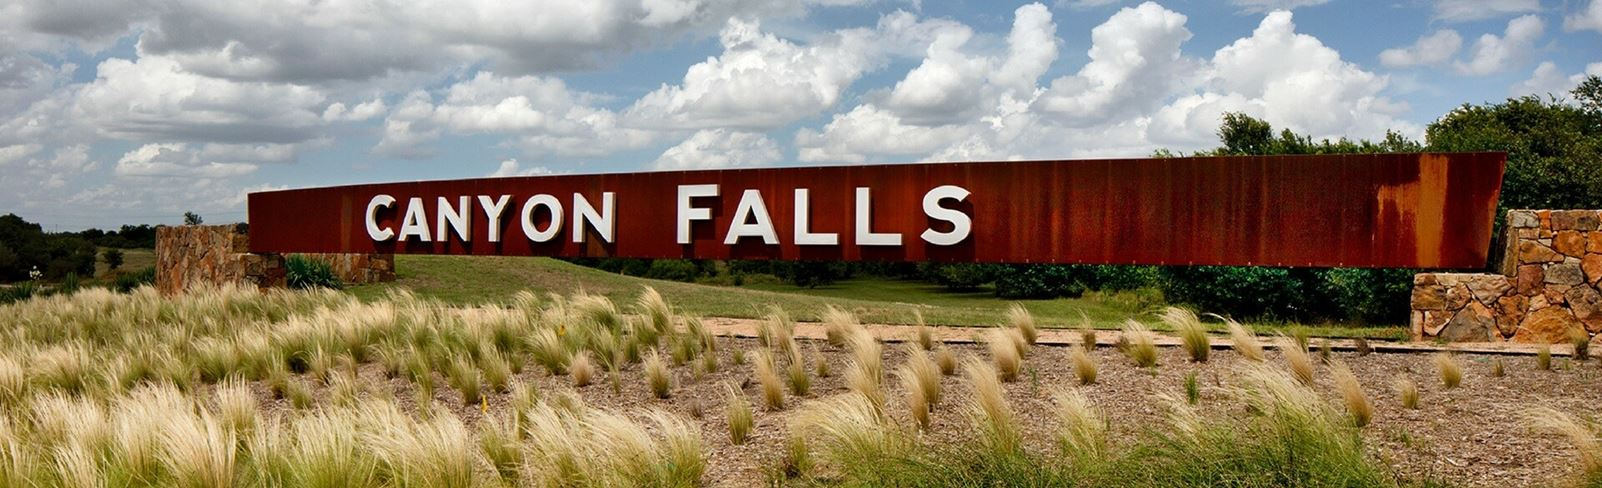 Canyon Falls Entrance - Northlake, TX